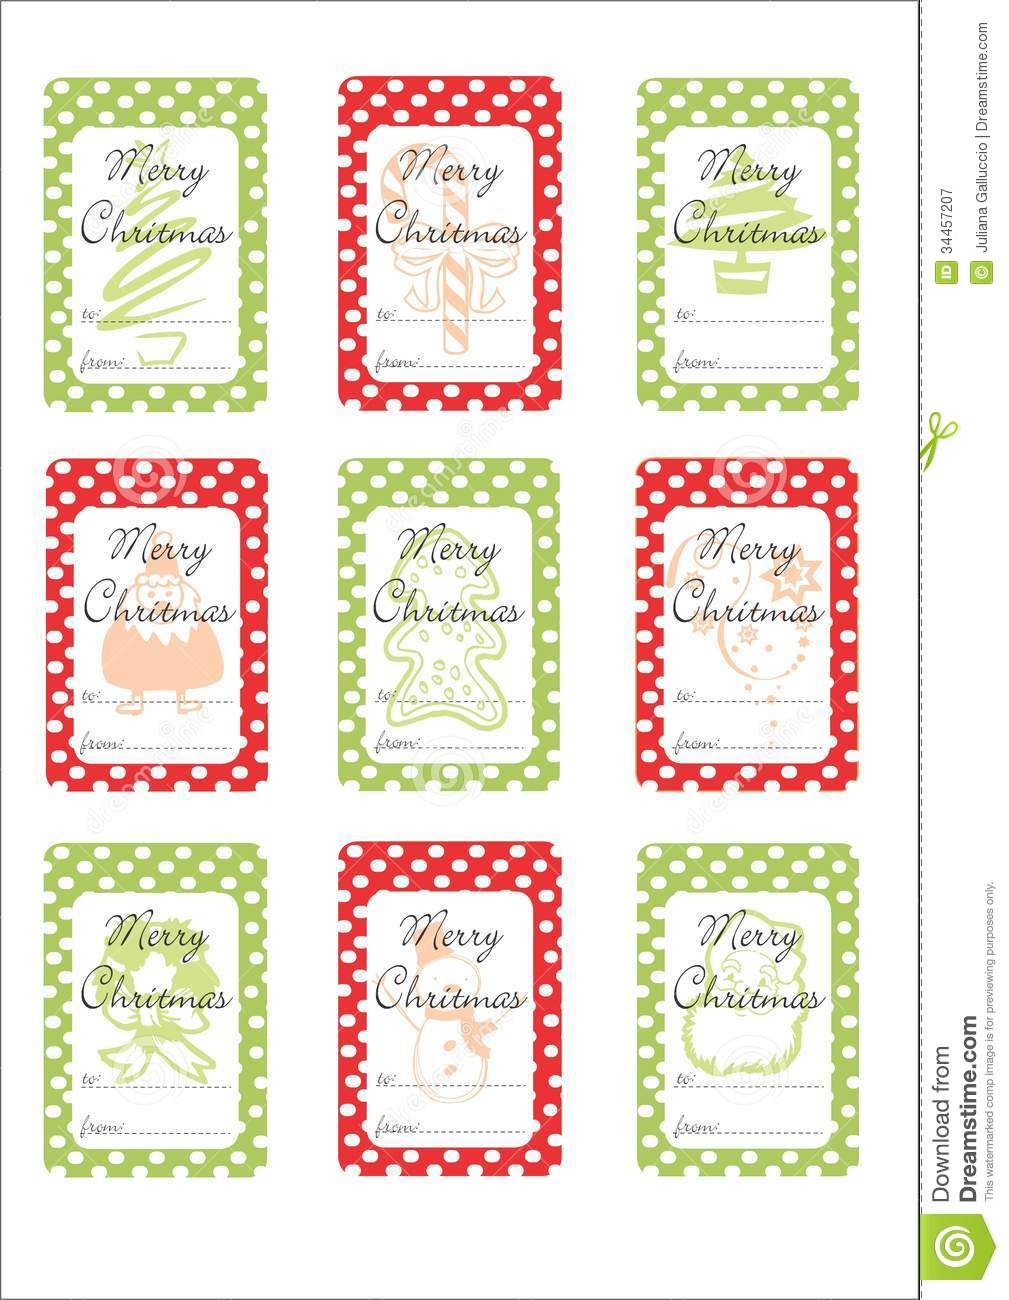 photo regarding Free Christmas Tag Printable named Chritmas Present Tags inventory instance. Case in point of